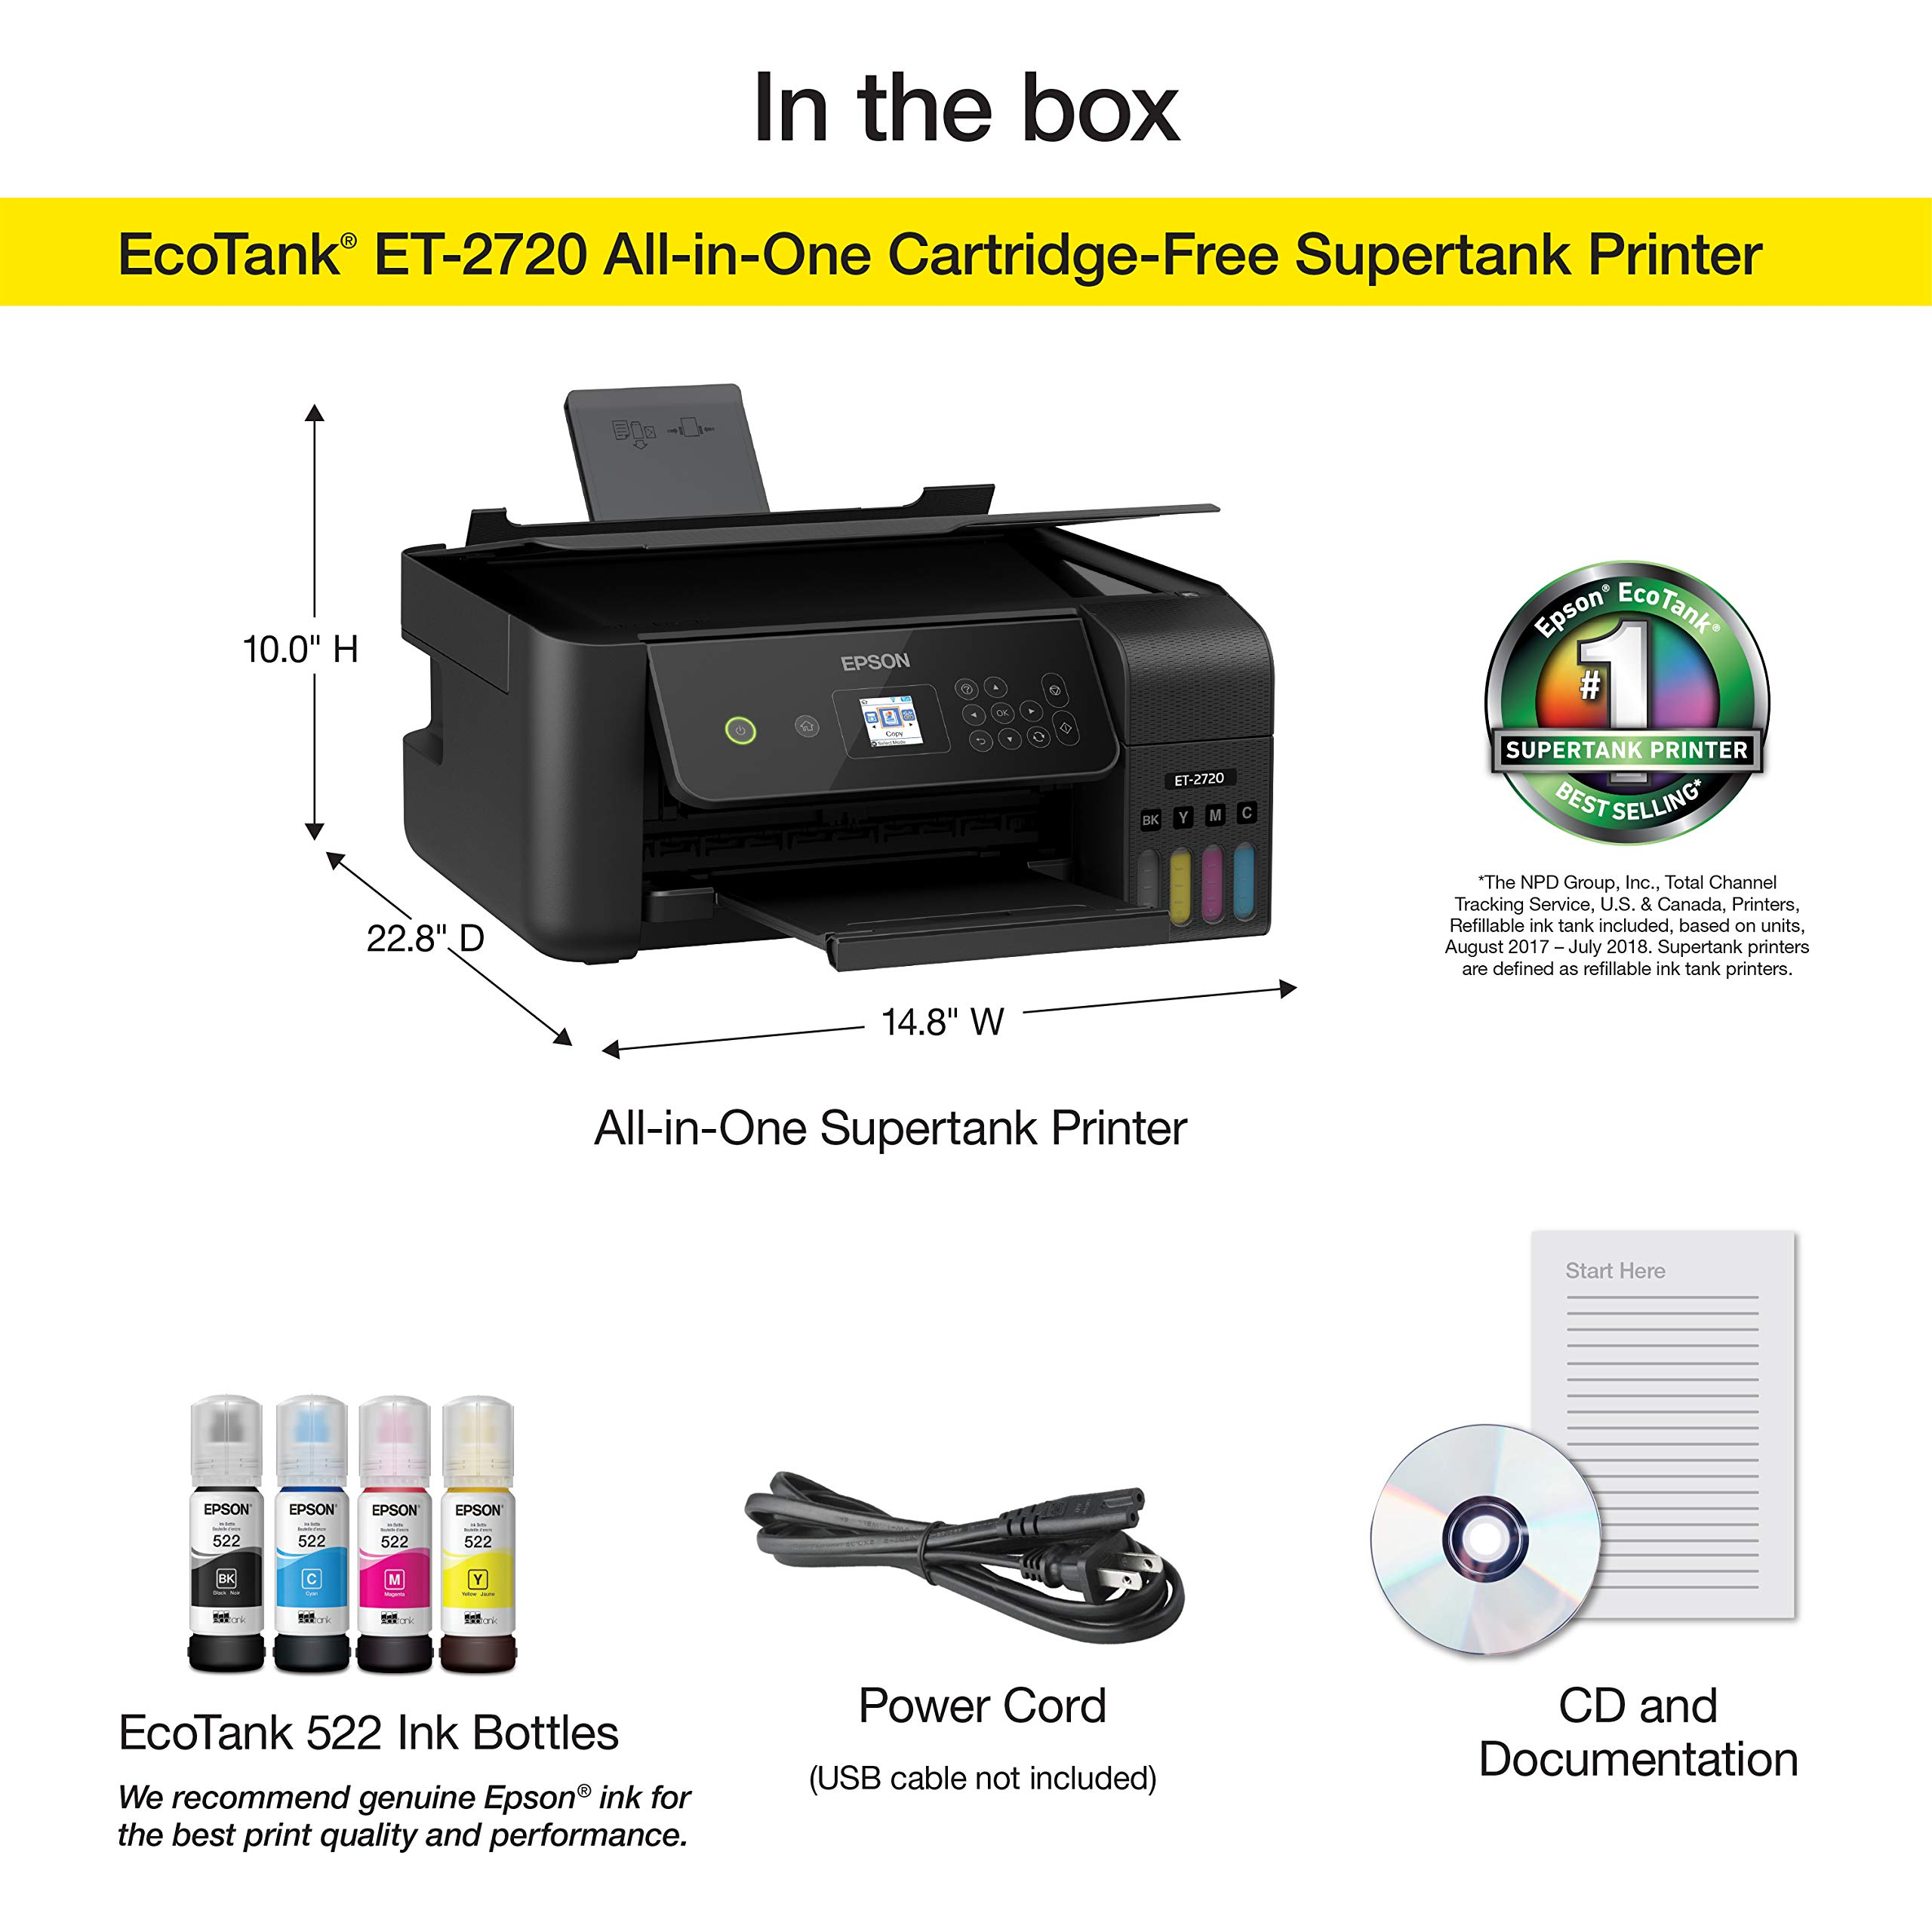 Epson EcoTank ET-2720 Wireless Color All-in-One Supertank Printer with Scanner and Copier - Black by Epson (Image #5)